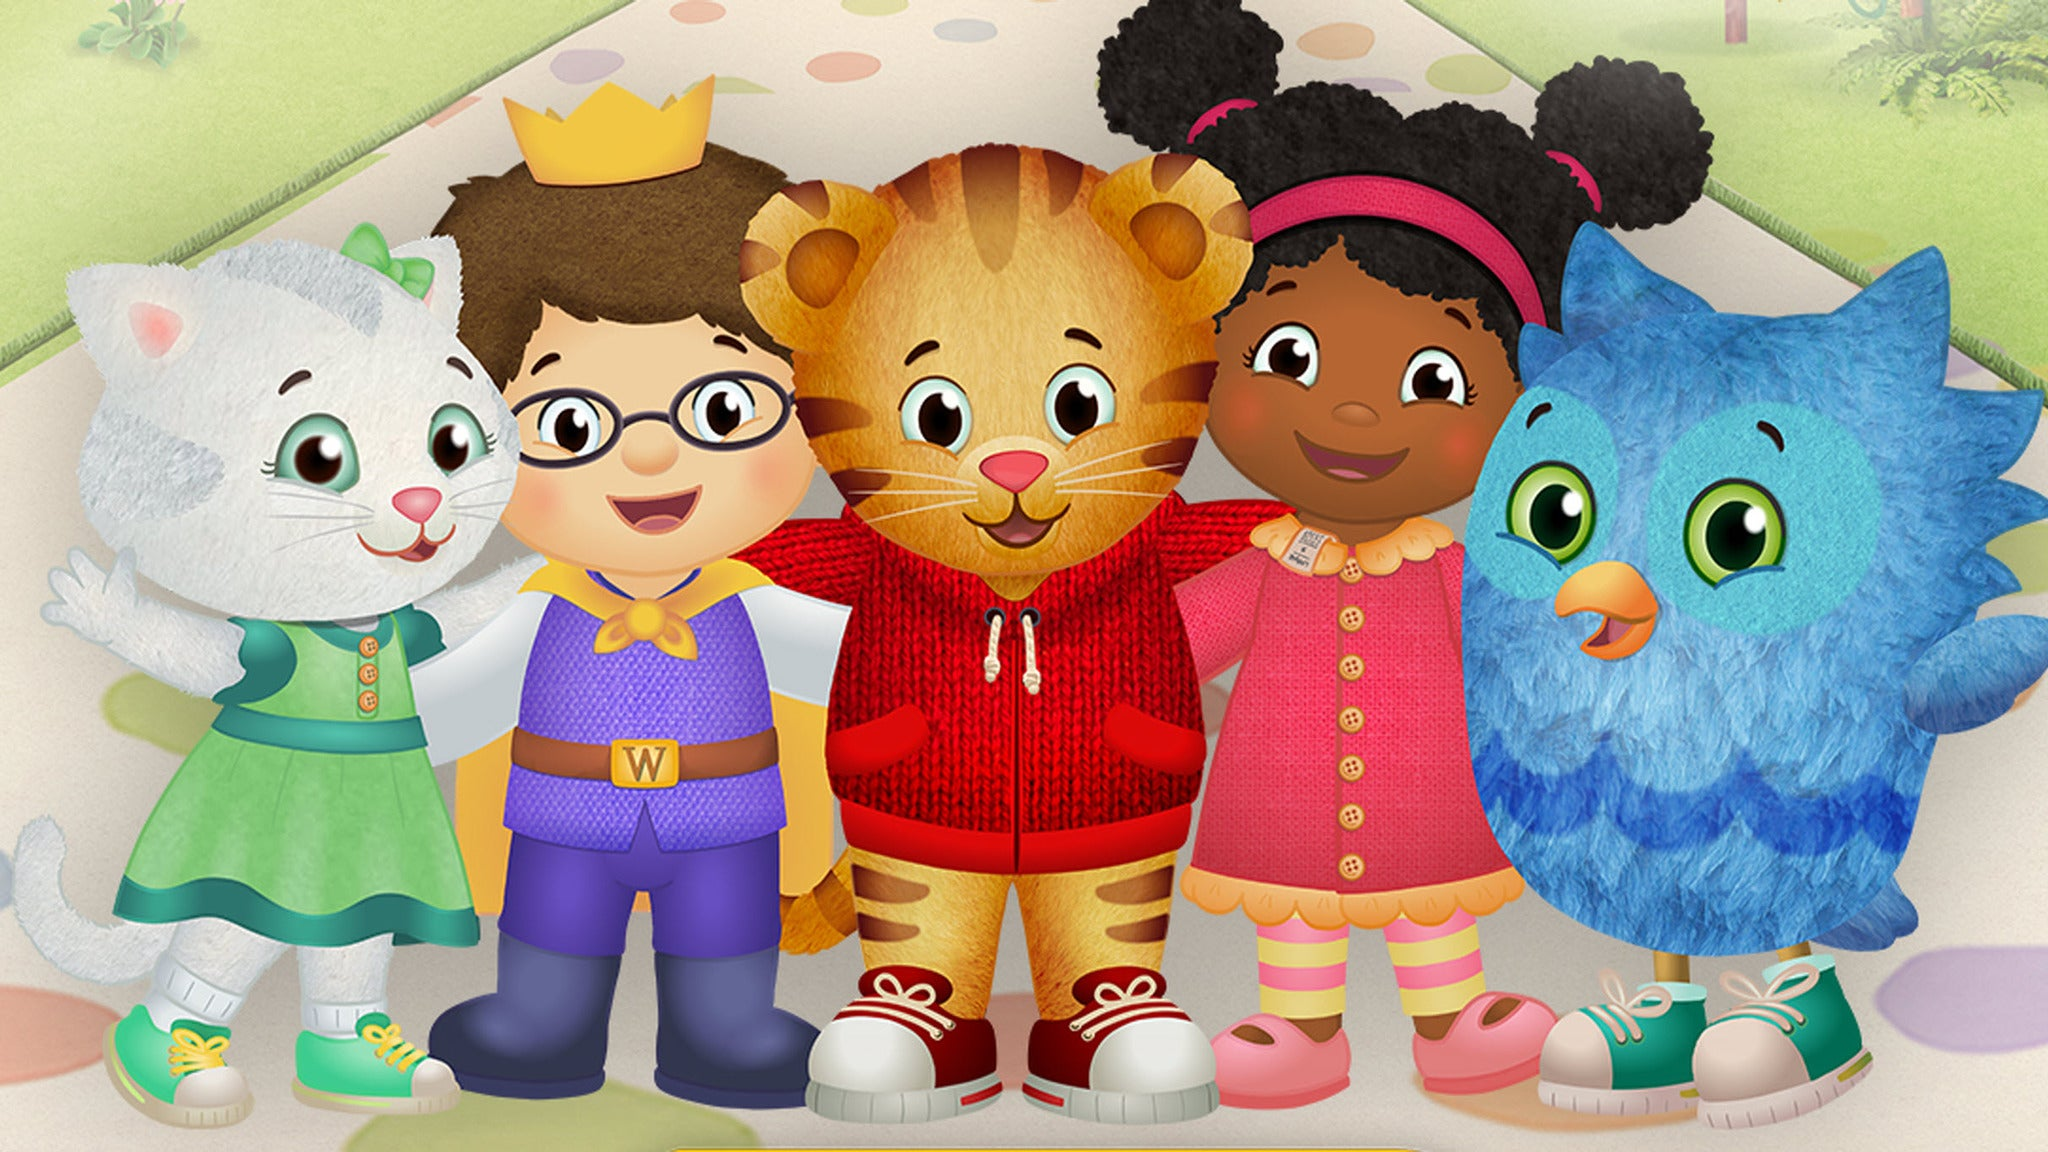 Daniel Tiger's Neighborhood at Des Moines Civic Center